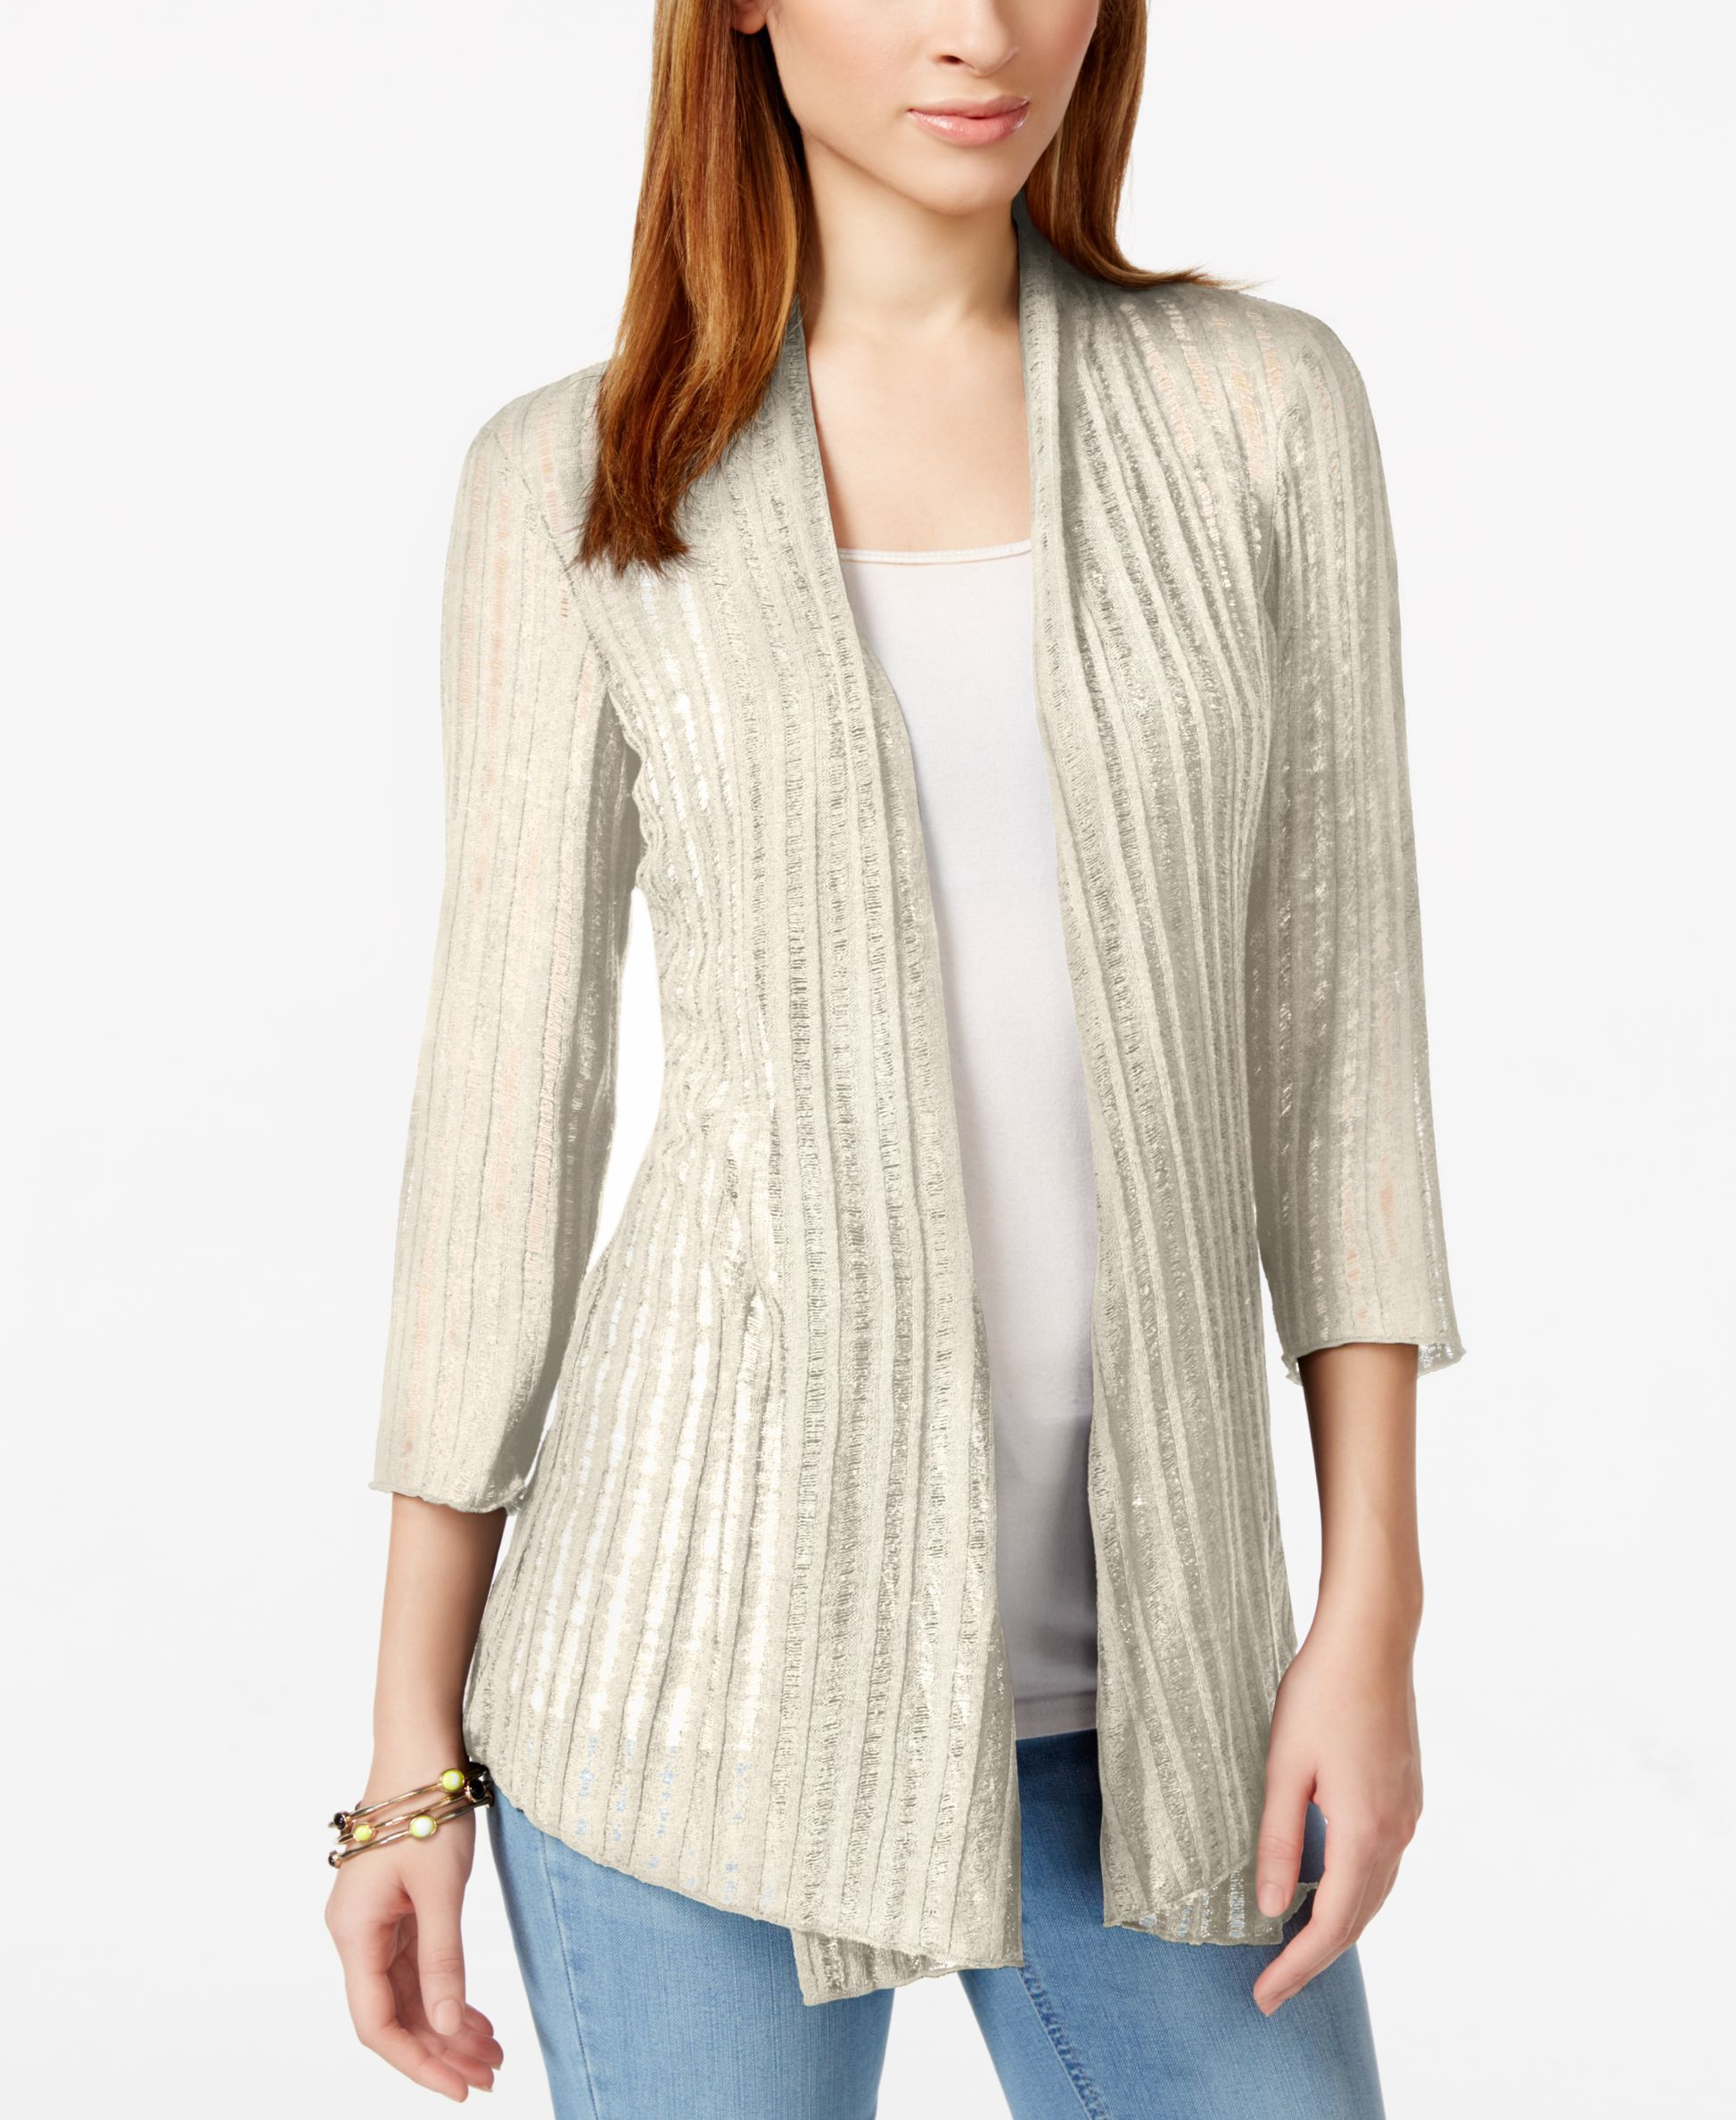 Jm Collection Open-Front Three-Quarter-Sleeve Cardigan, Only at ...